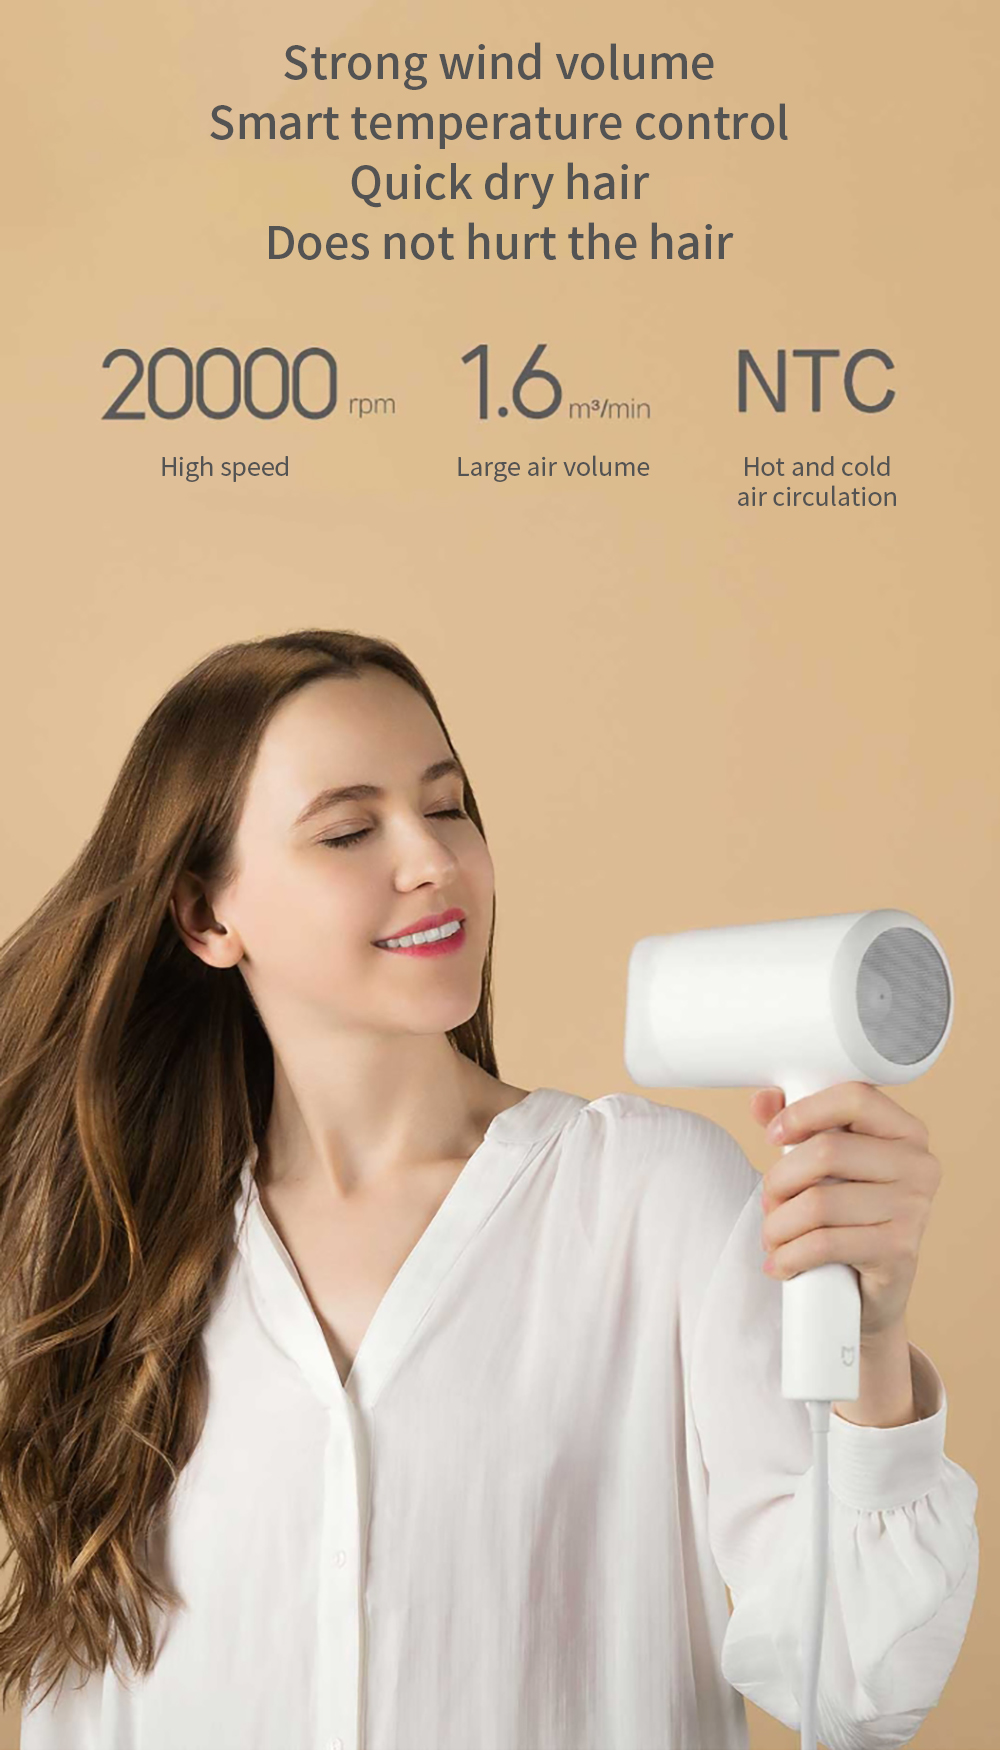 XIAOMI Mijia Portable Water Ion Electric Hair Dryer Quick Dry 1800W High Power Three-gear Adjustment Temperature Hair Dryer Low Roise Blow Dryer for Home Travel Kits White